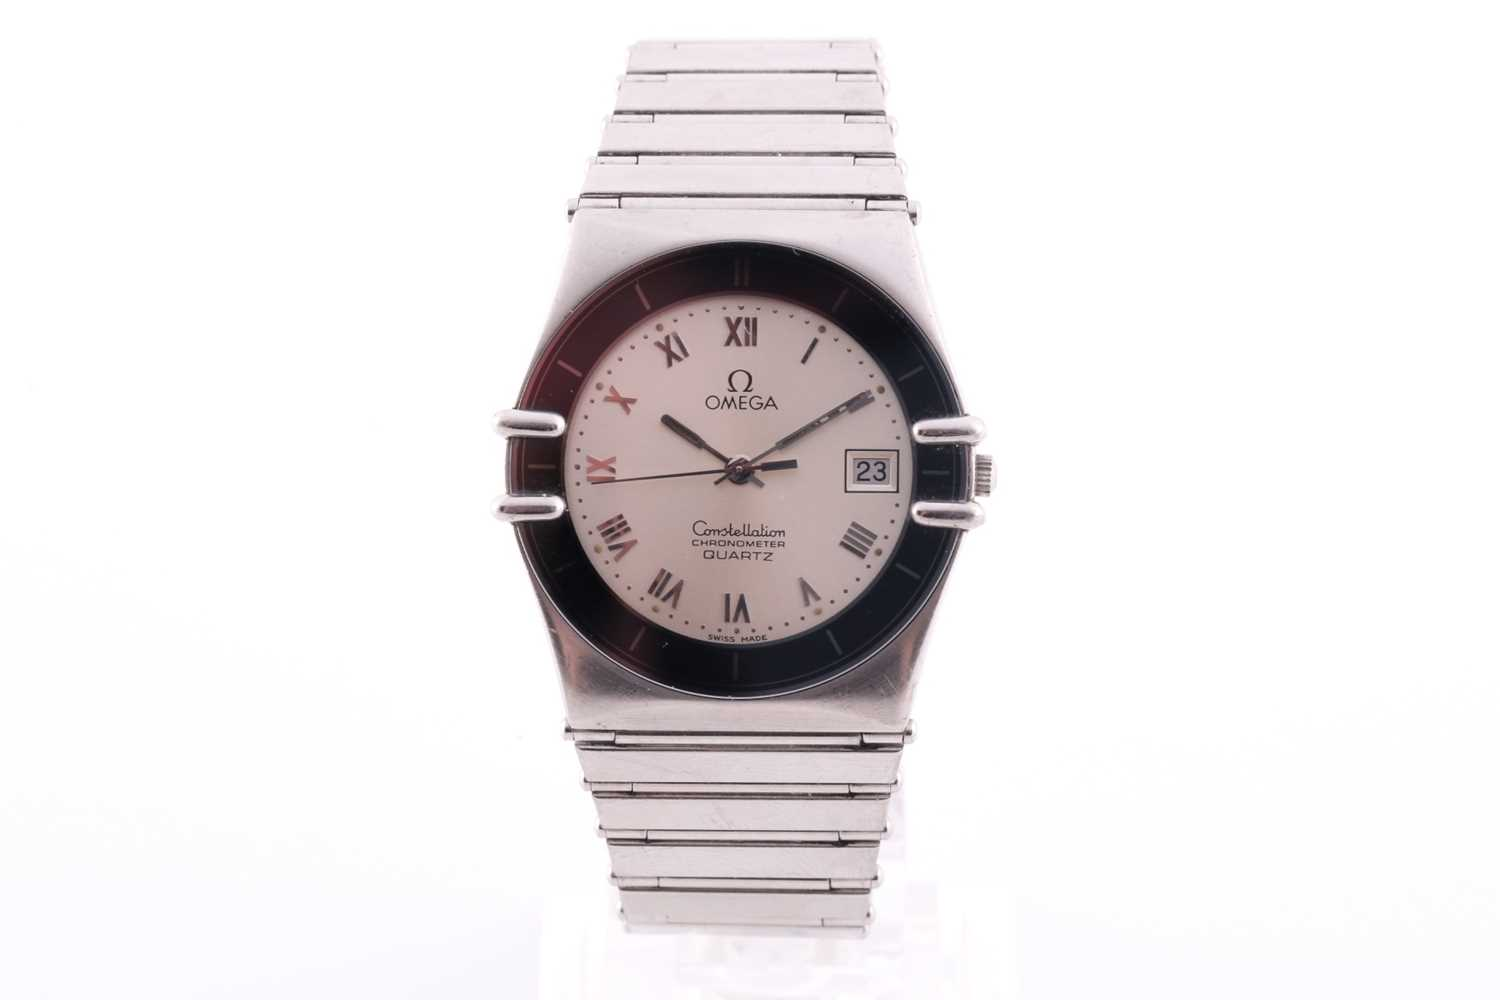 An Omega Constellation chronometer quartz wristwatch, with date aperture and Roman numeral dial,